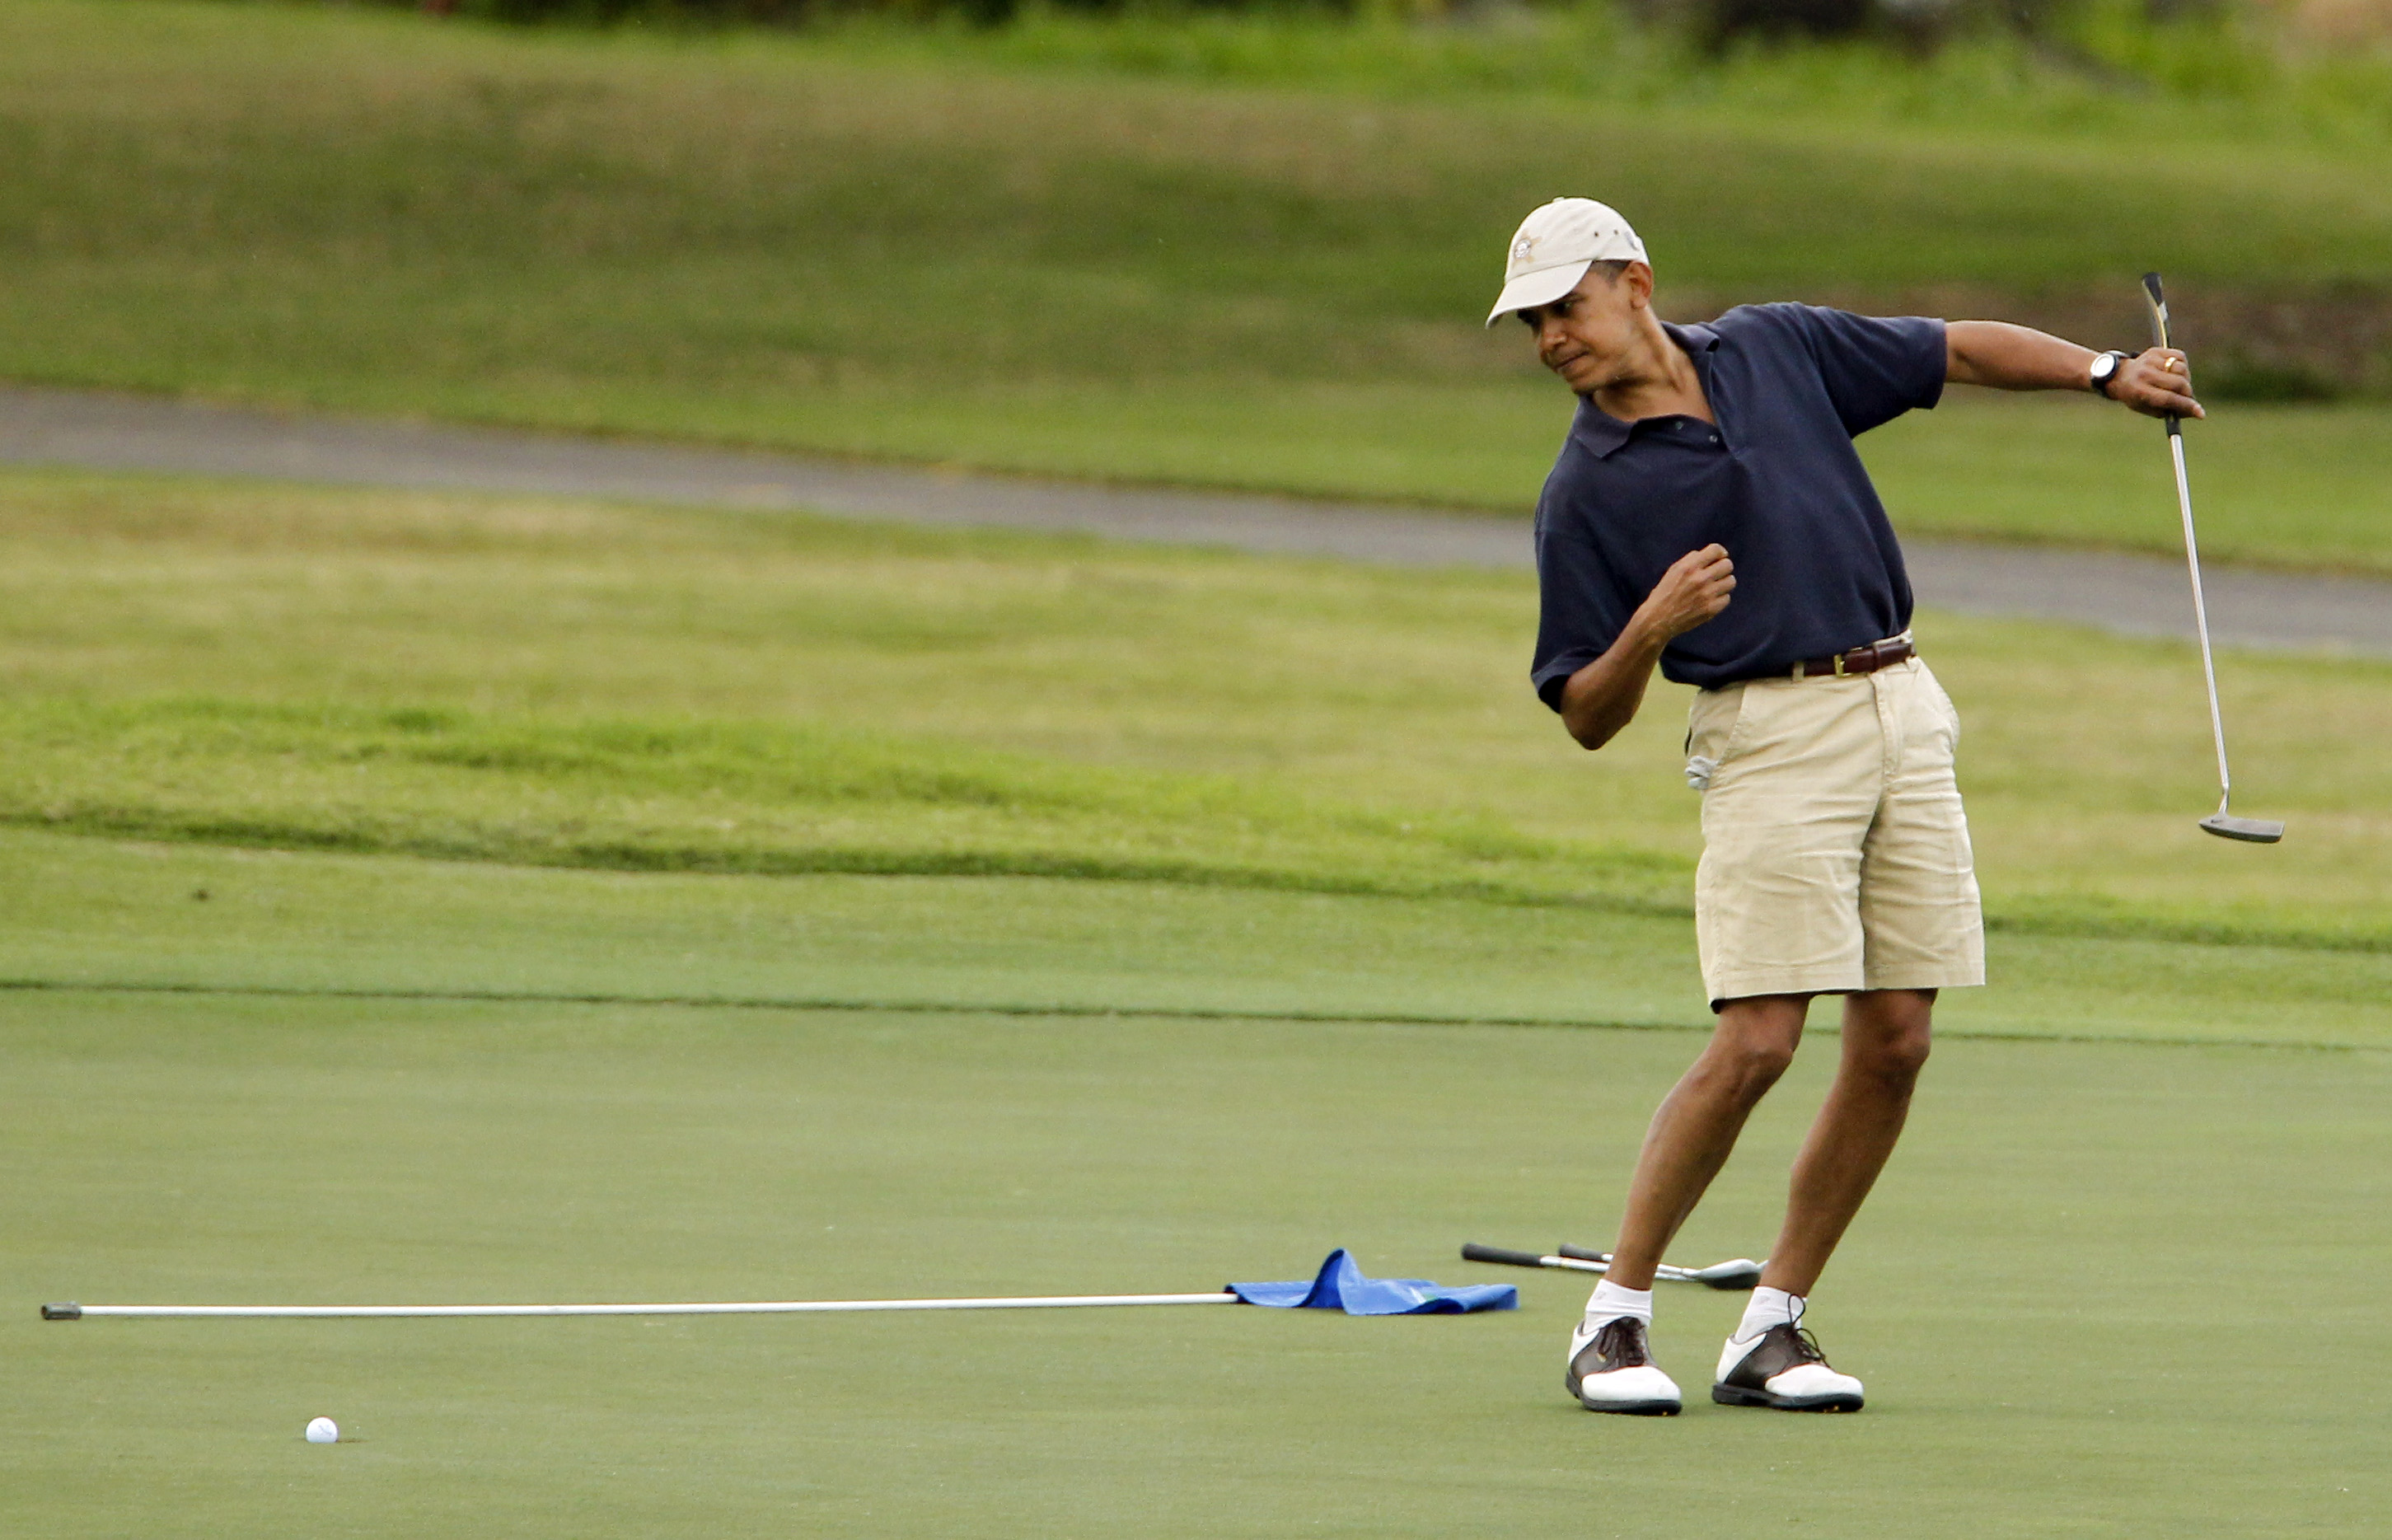 Obama finally talks of Tiger Woods: 'He's on another planet'